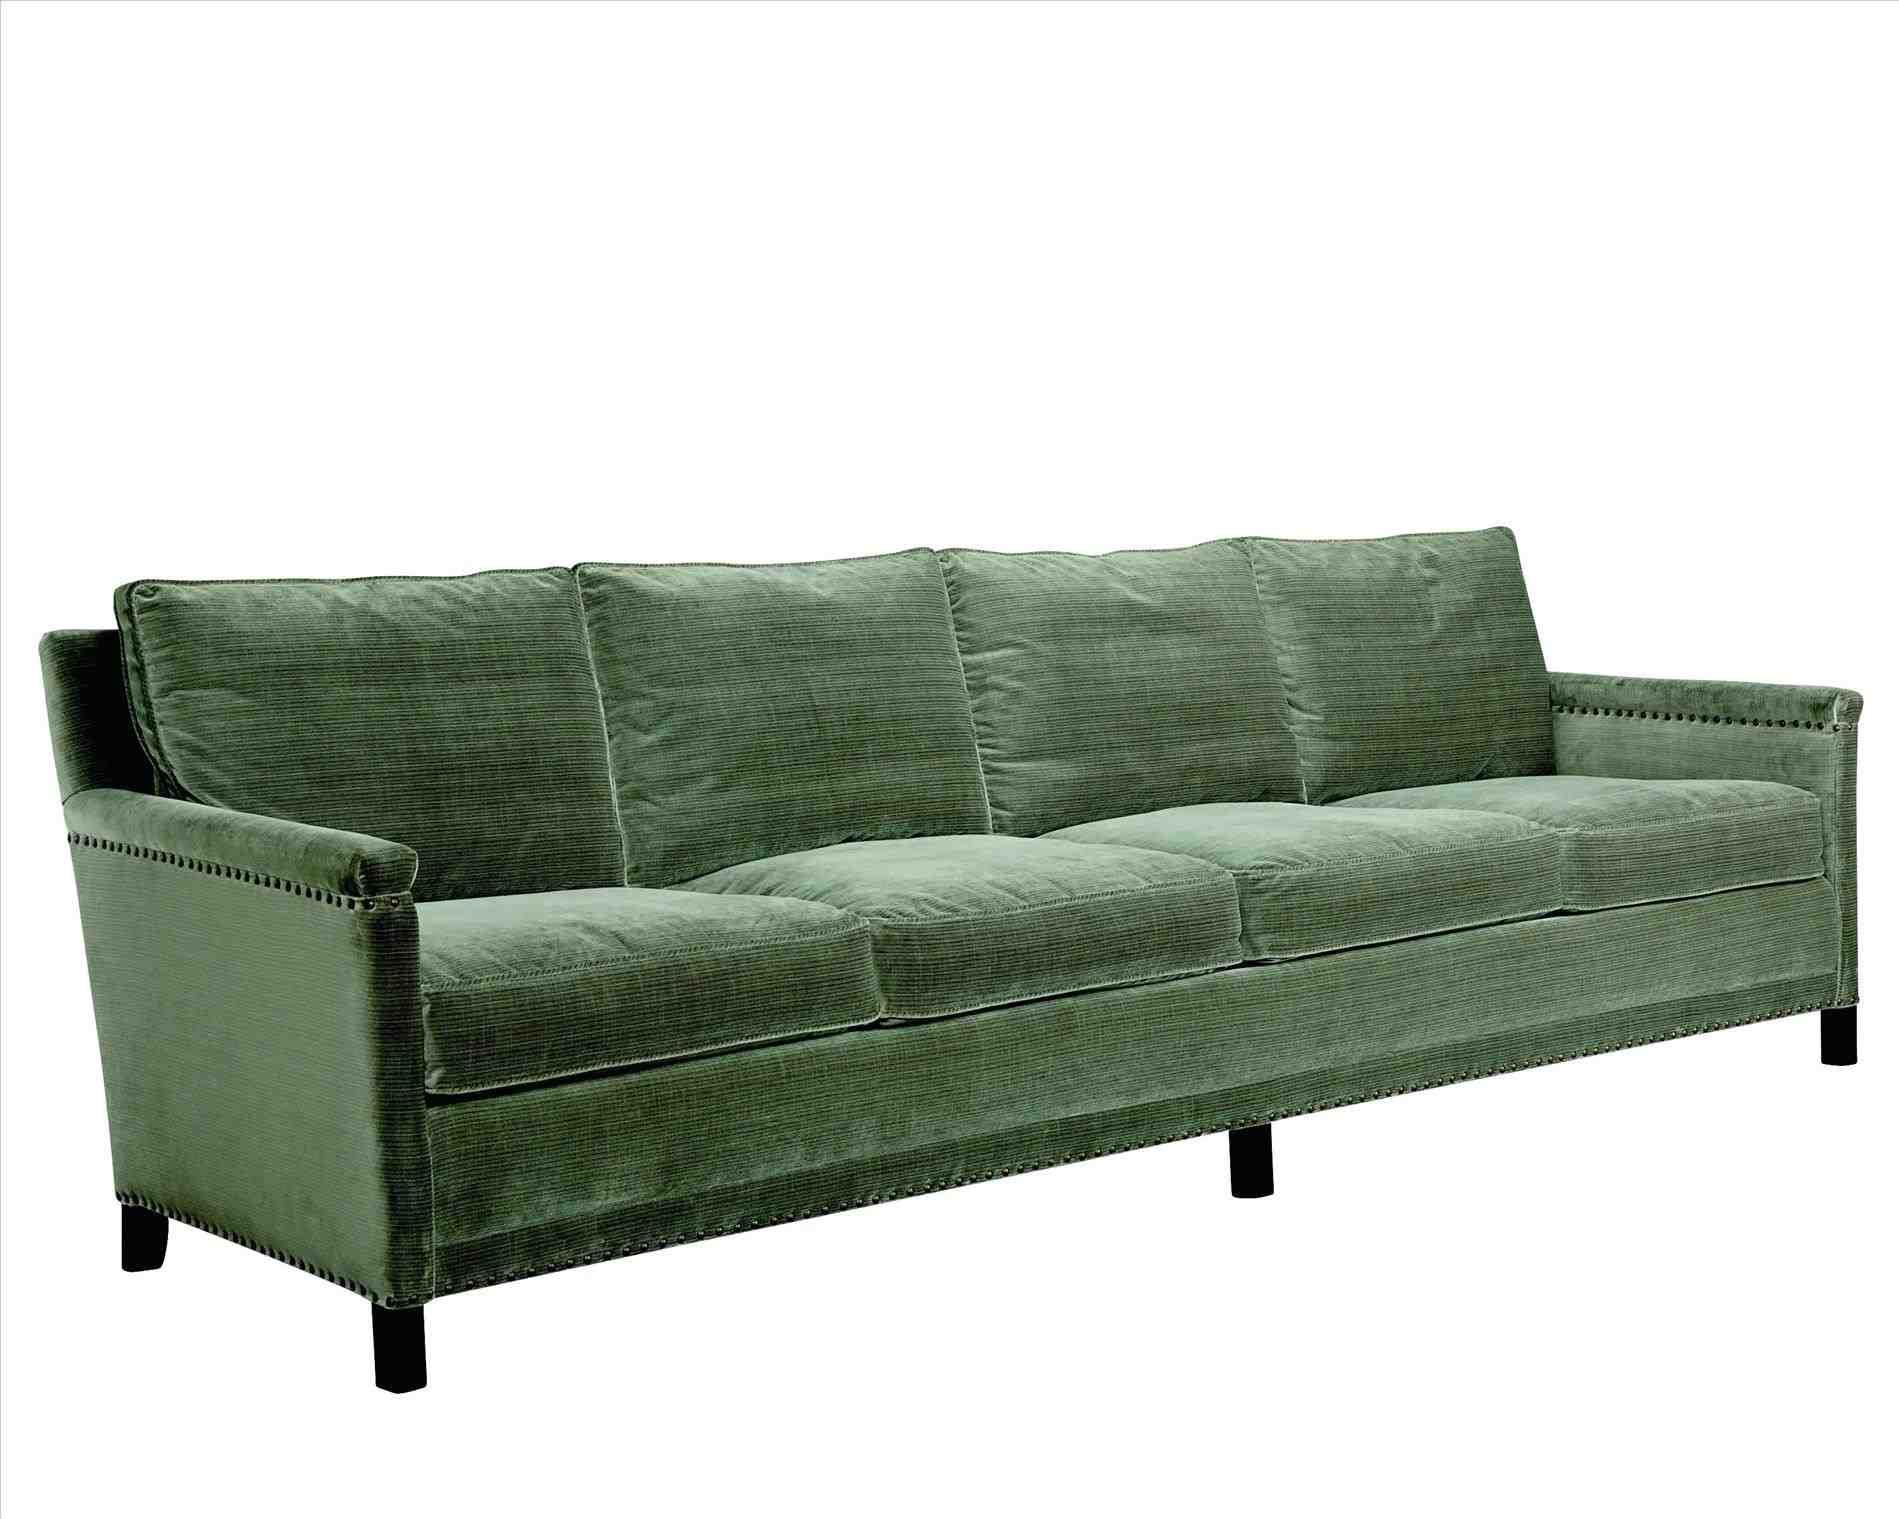 Cheap Futons At Lots With Images